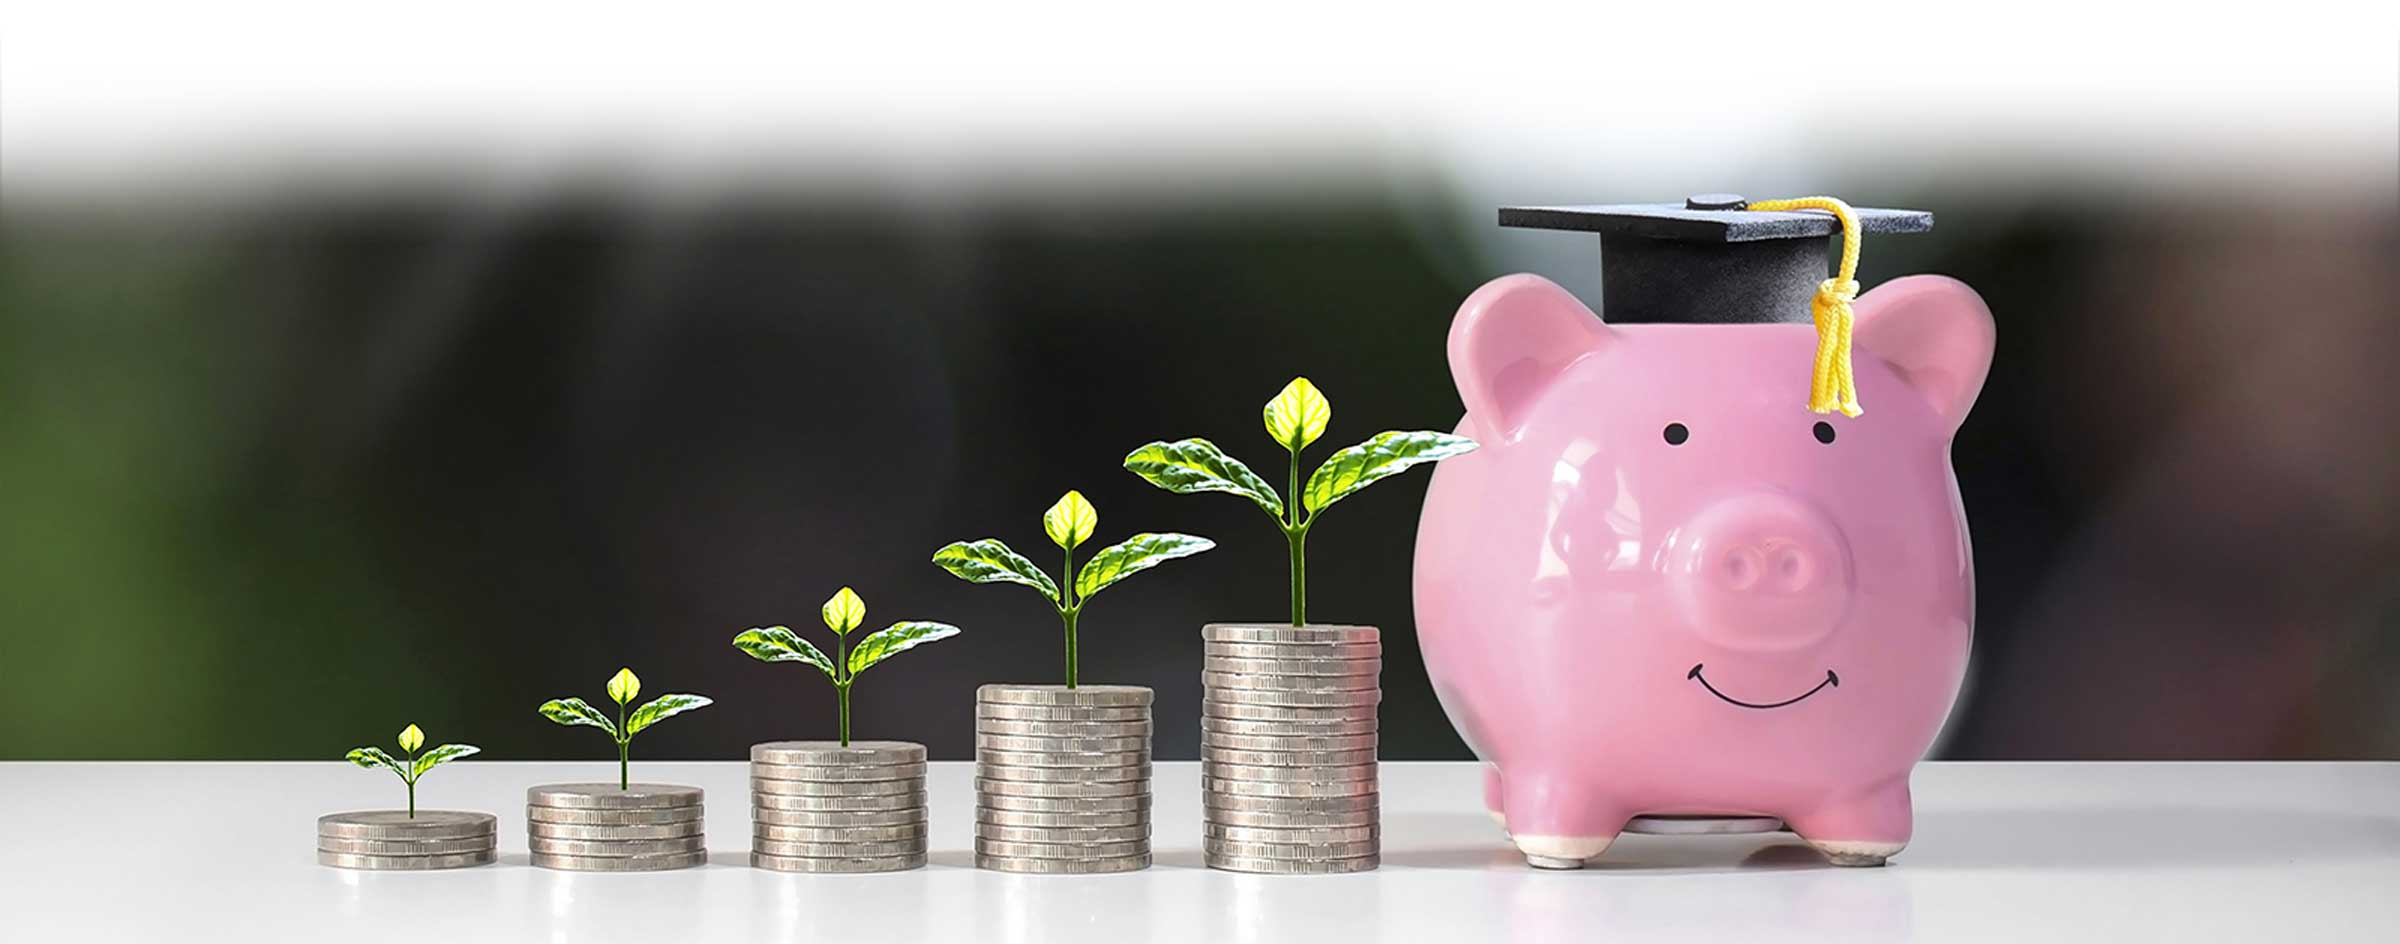 Stacked coins in upward growth trend, plant growth, piggy bank with graduation cap